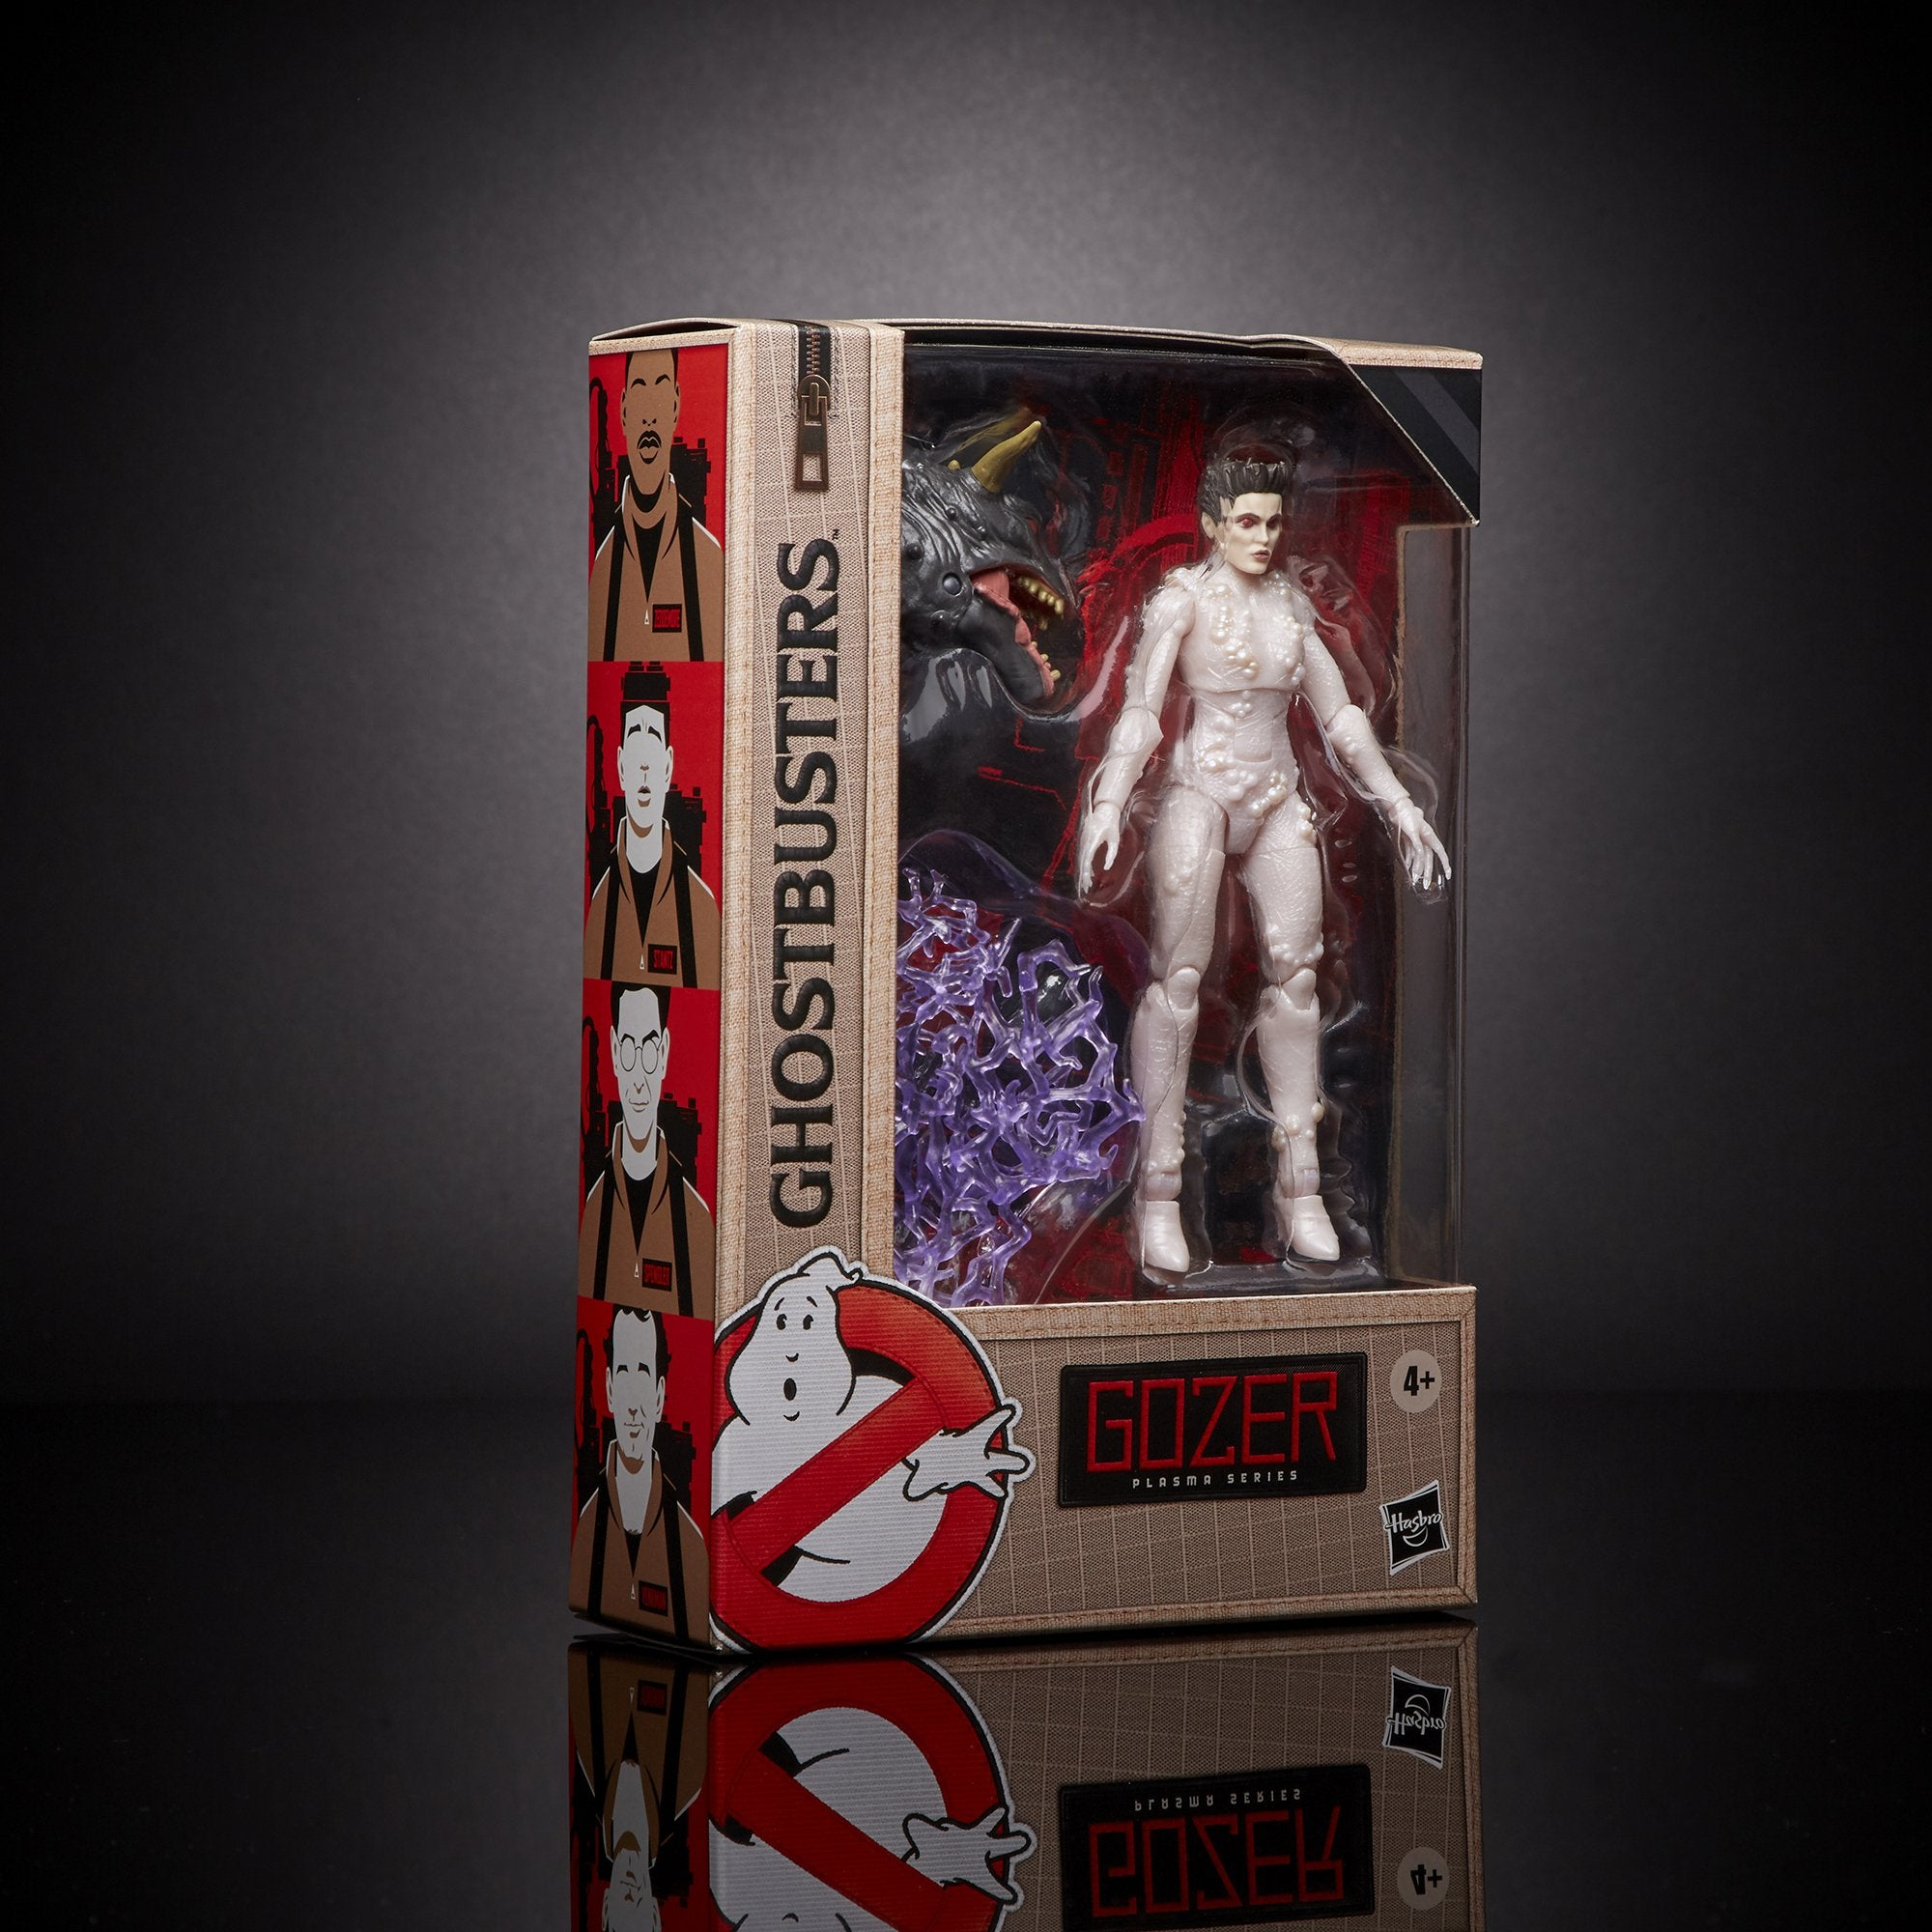 Ghostbusters 1984 - Plasma Series - Terror Dog Build-A-Ghost - Gozer Action Figure (E9798)